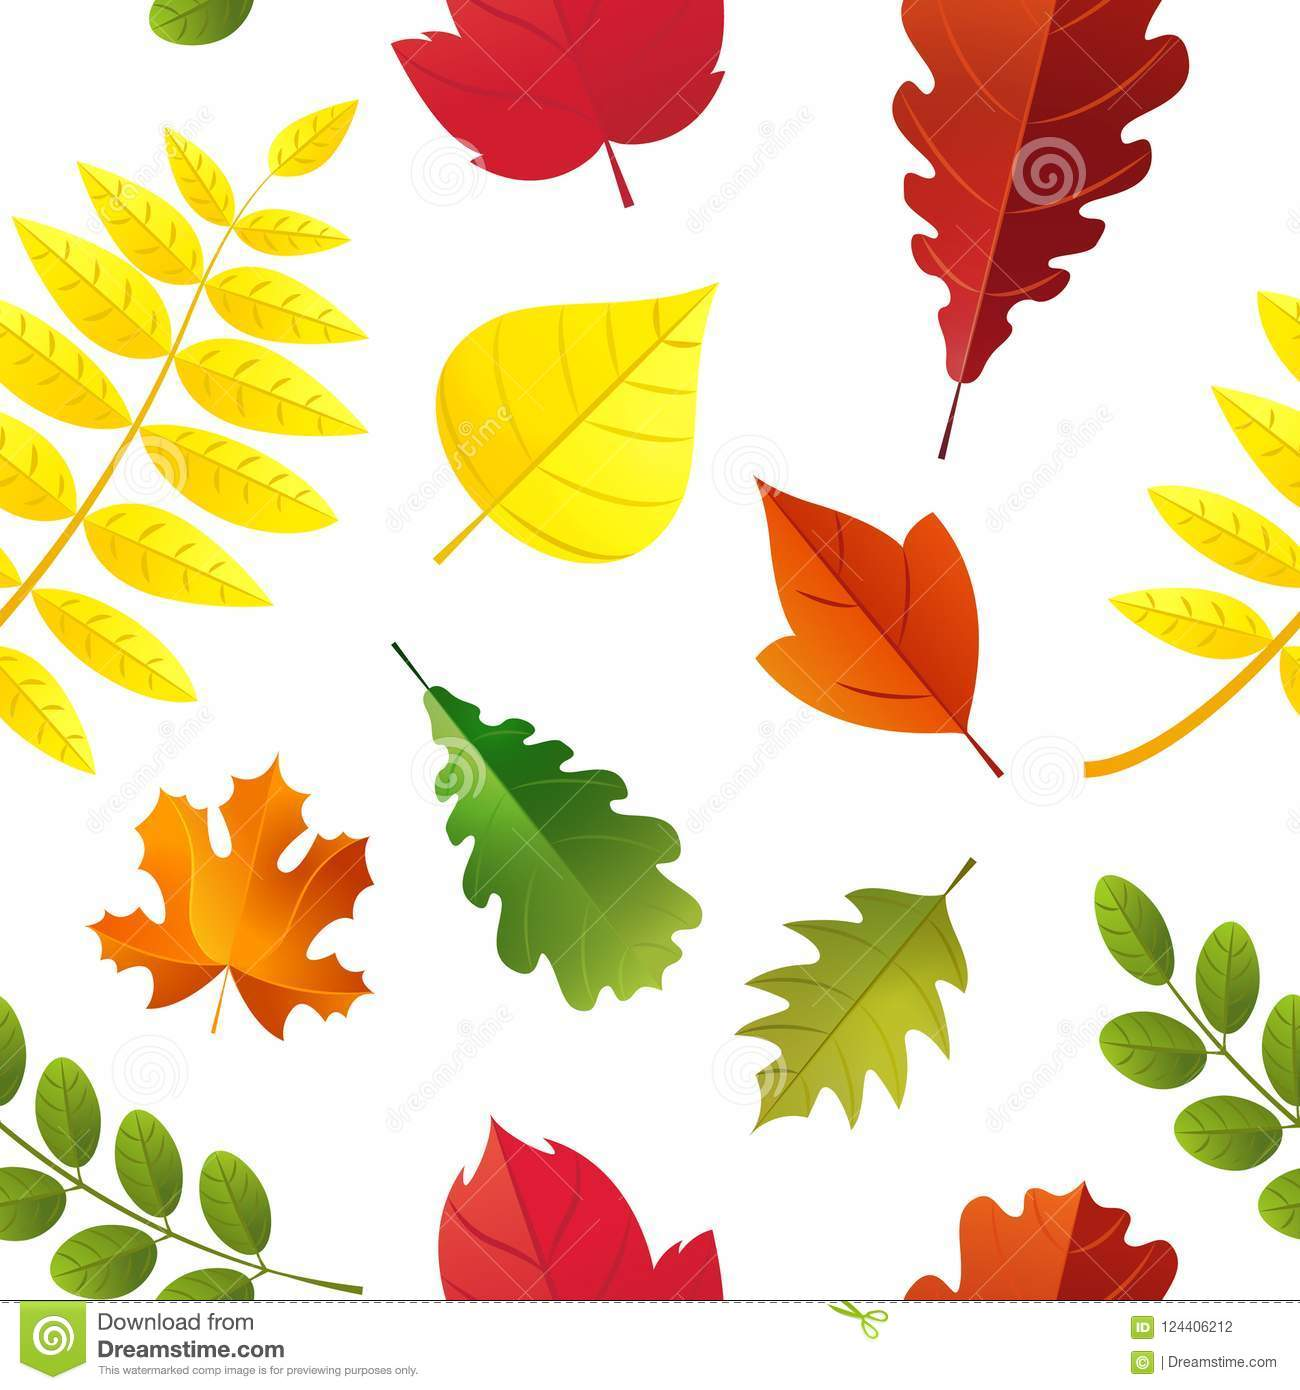 Seamless Autumn Leaves Pattern Isolated On White Background Colorful Fall Leaf Cartoon Flat Style Stock Vector Illustration Of Season Leaf 124406212